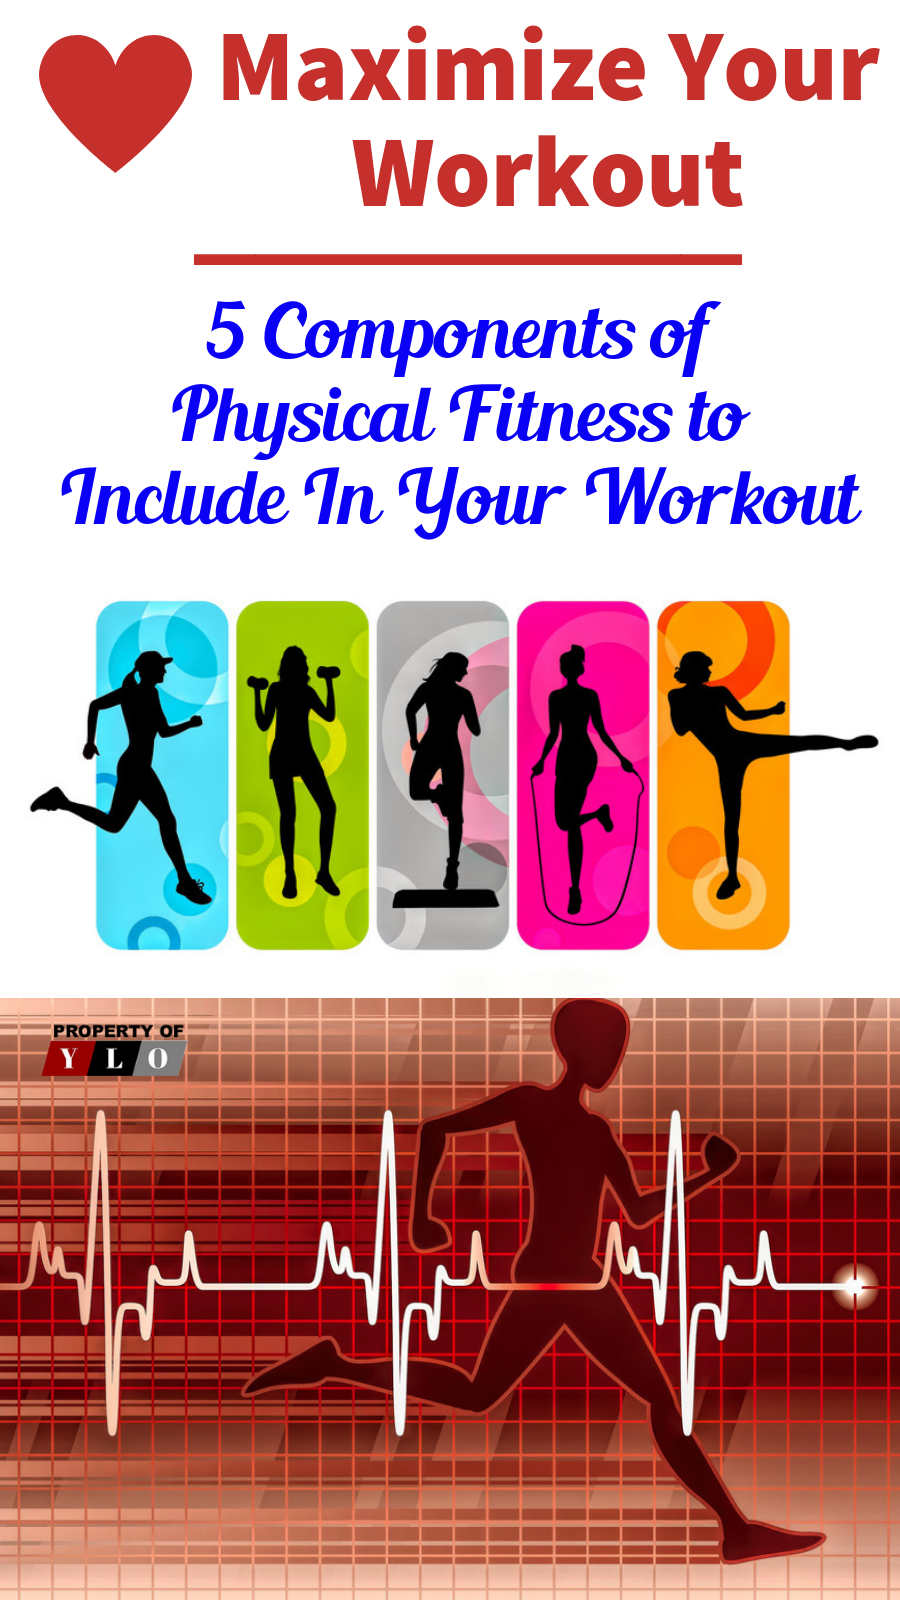 Concentrate On The 5 Components Of Physical Fitness For A Total Body Workout Plan